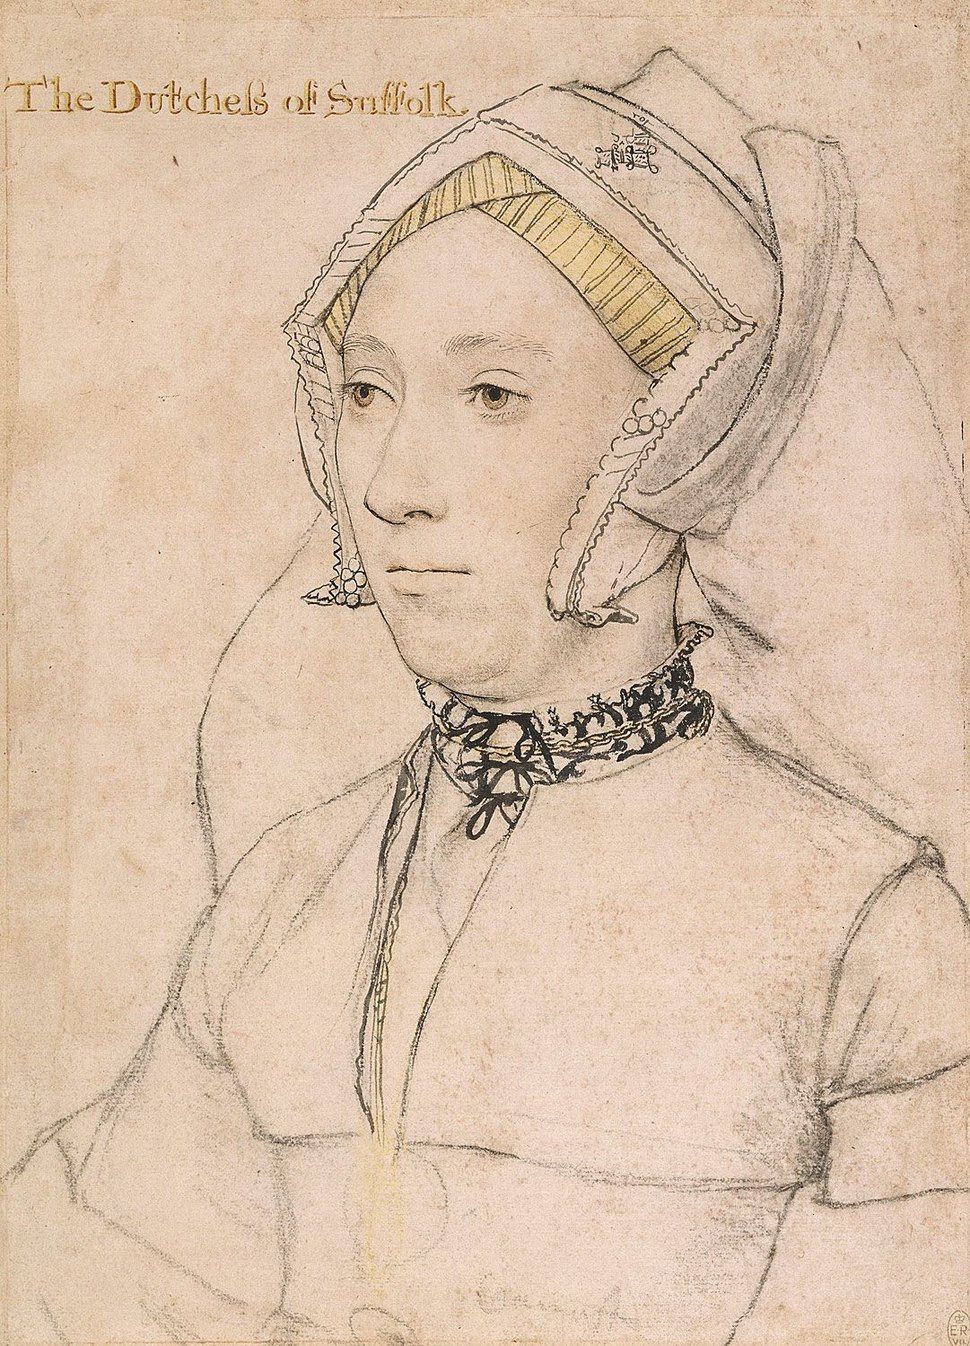 Catherine, Duchess of Suffolk by Hans Holbein the Younger